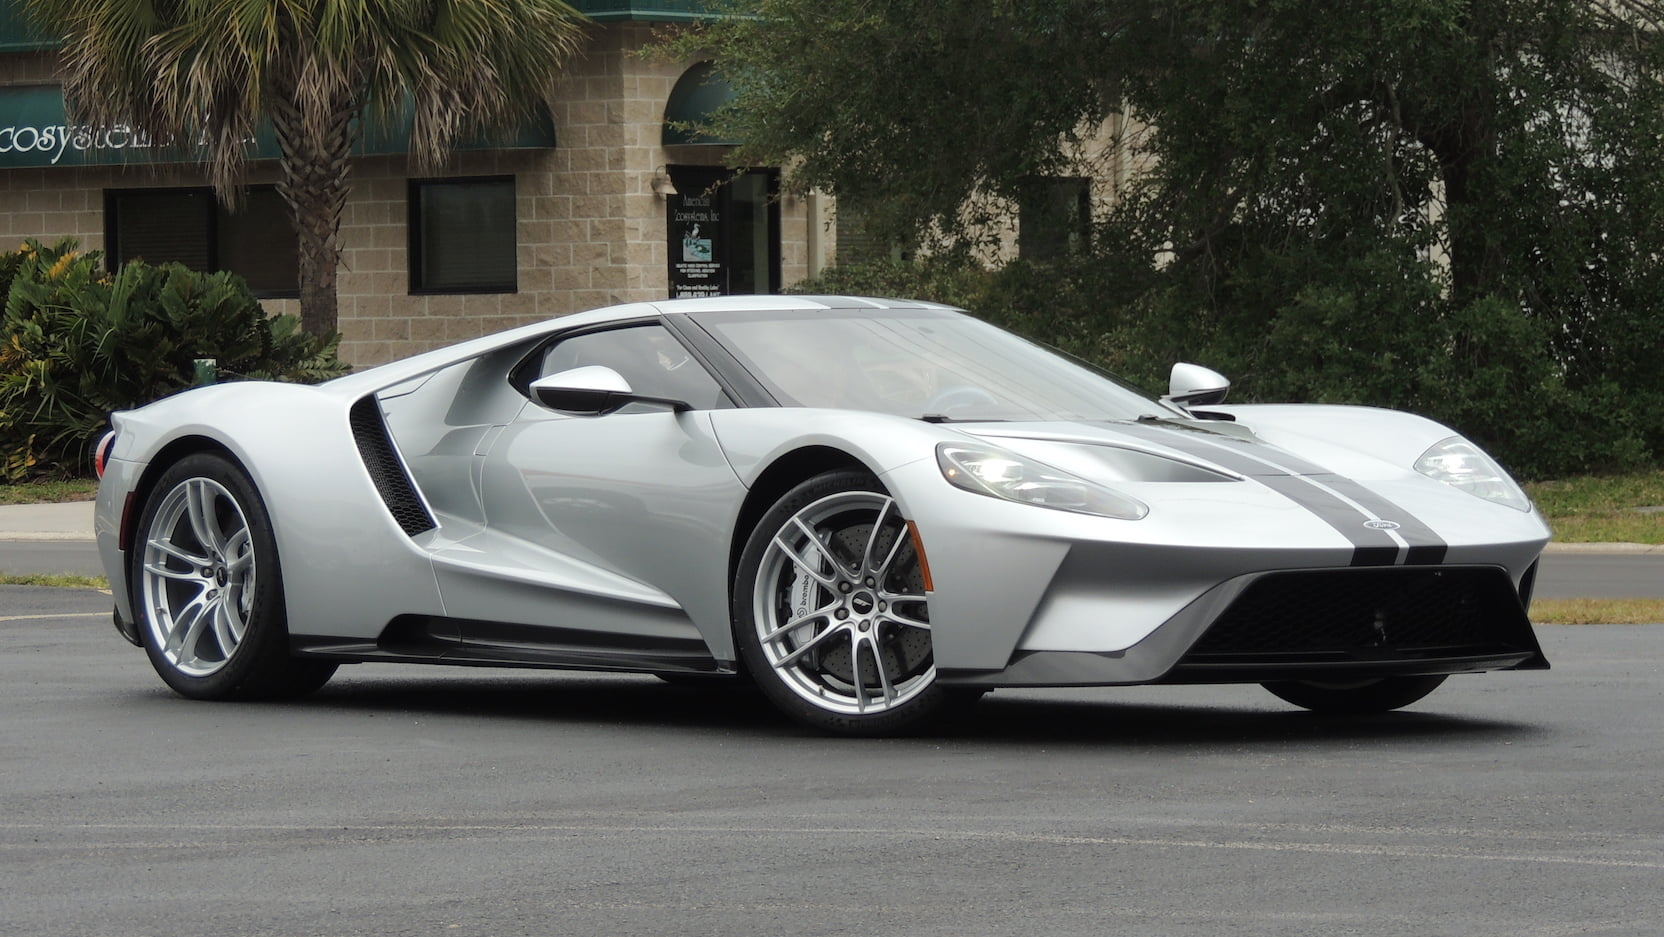 2017 Ford GT sells for $1.65M, Mecum says judge approved sale thumbnail